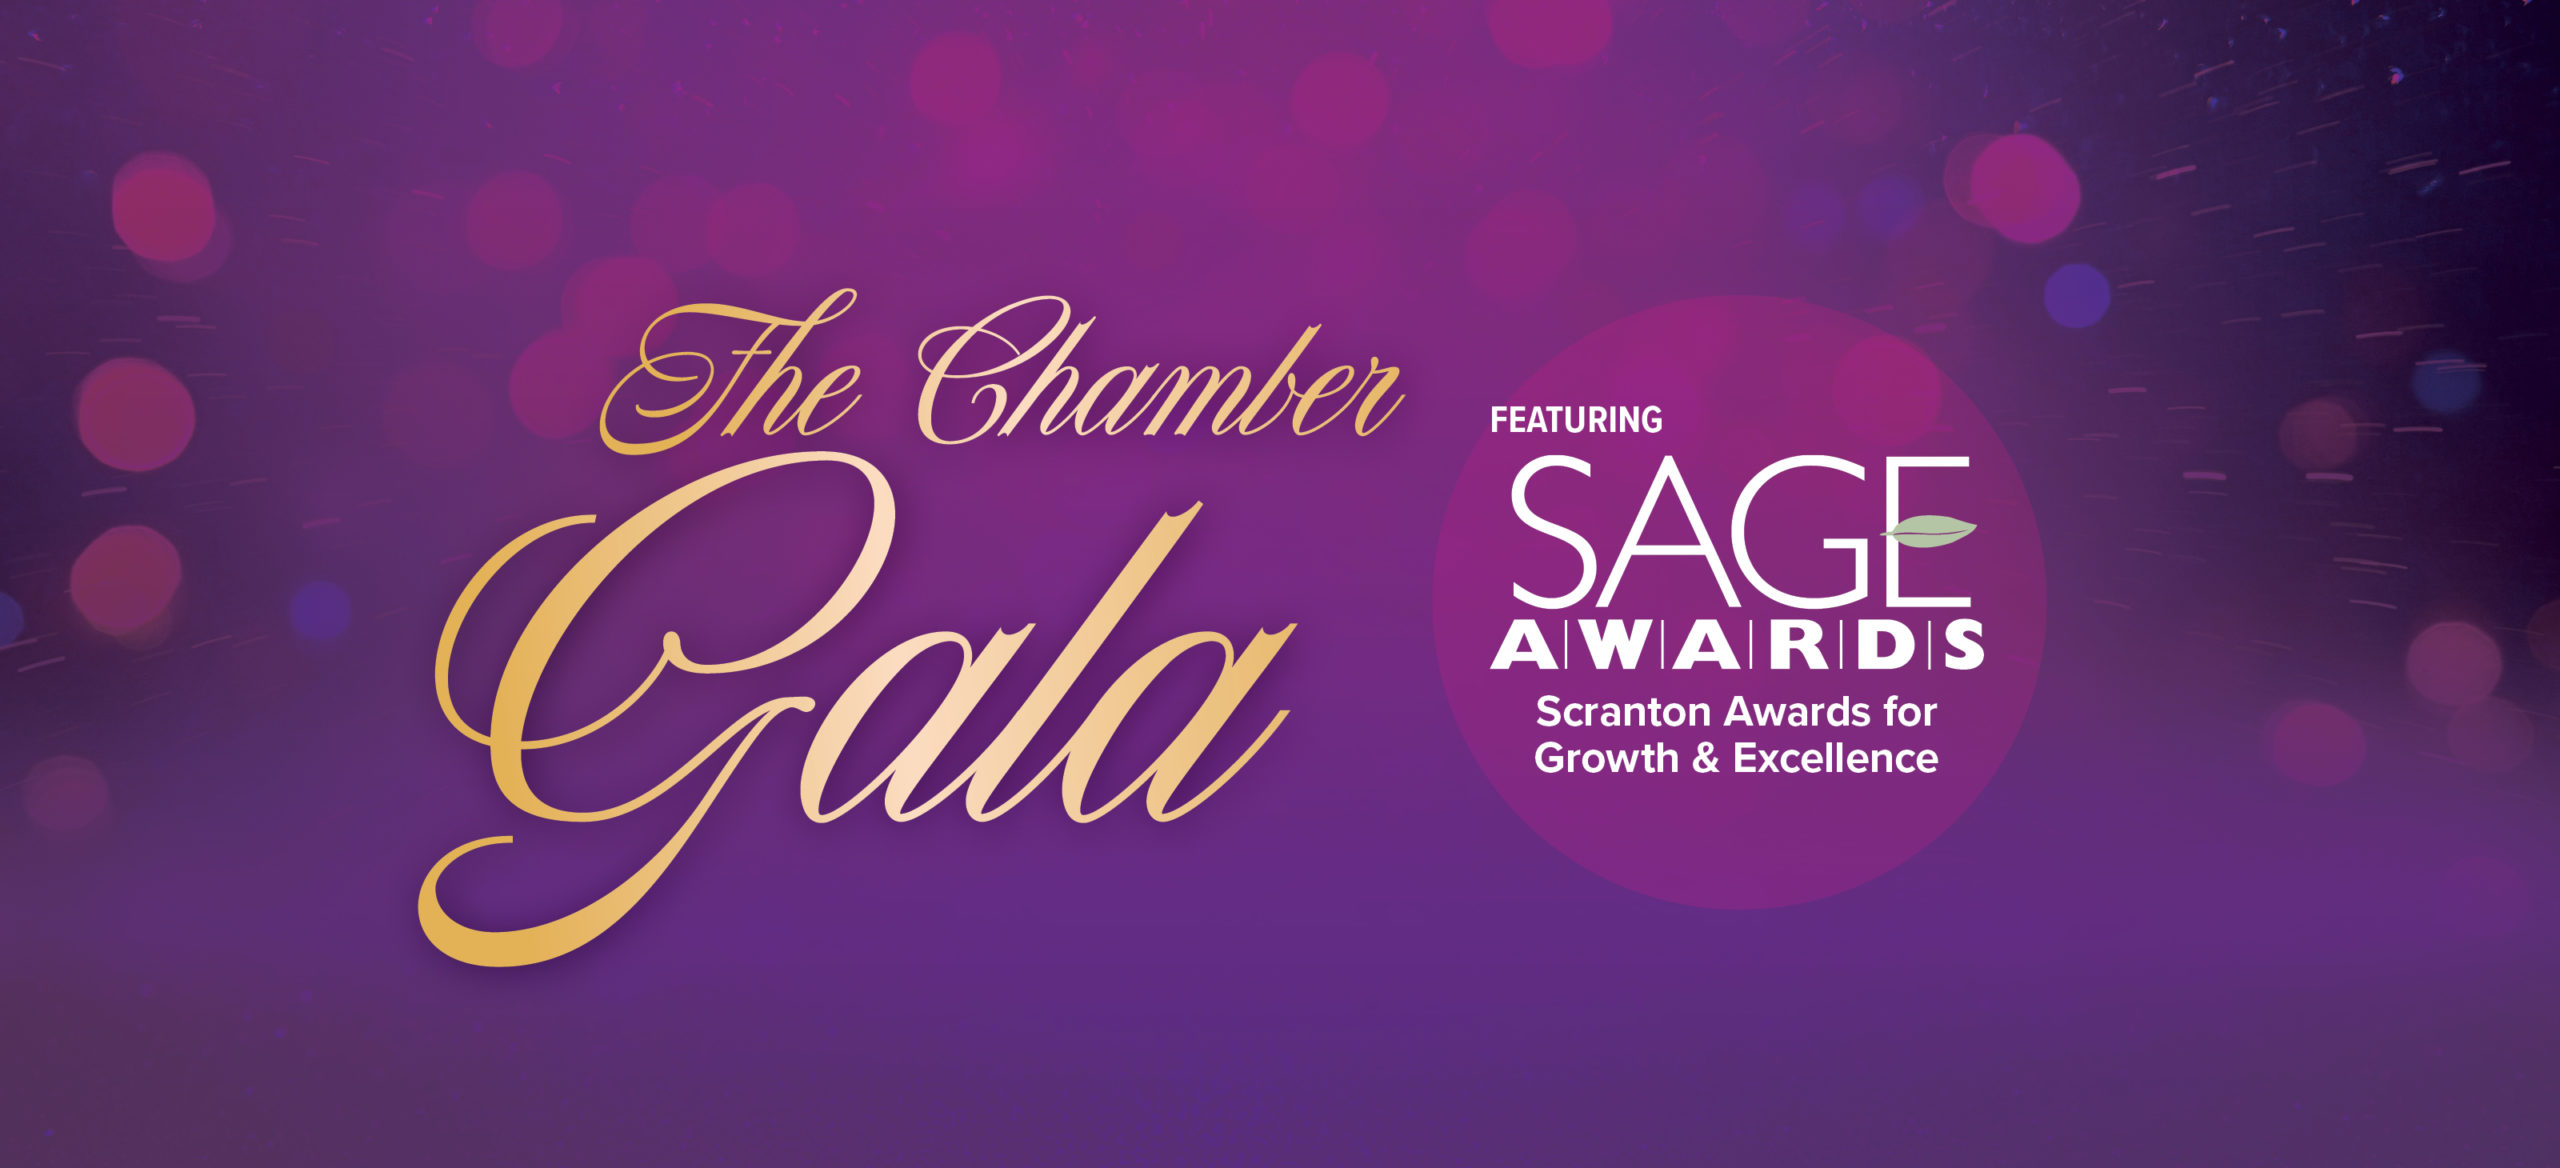 Chamber Gala featuring the SAGE Awards